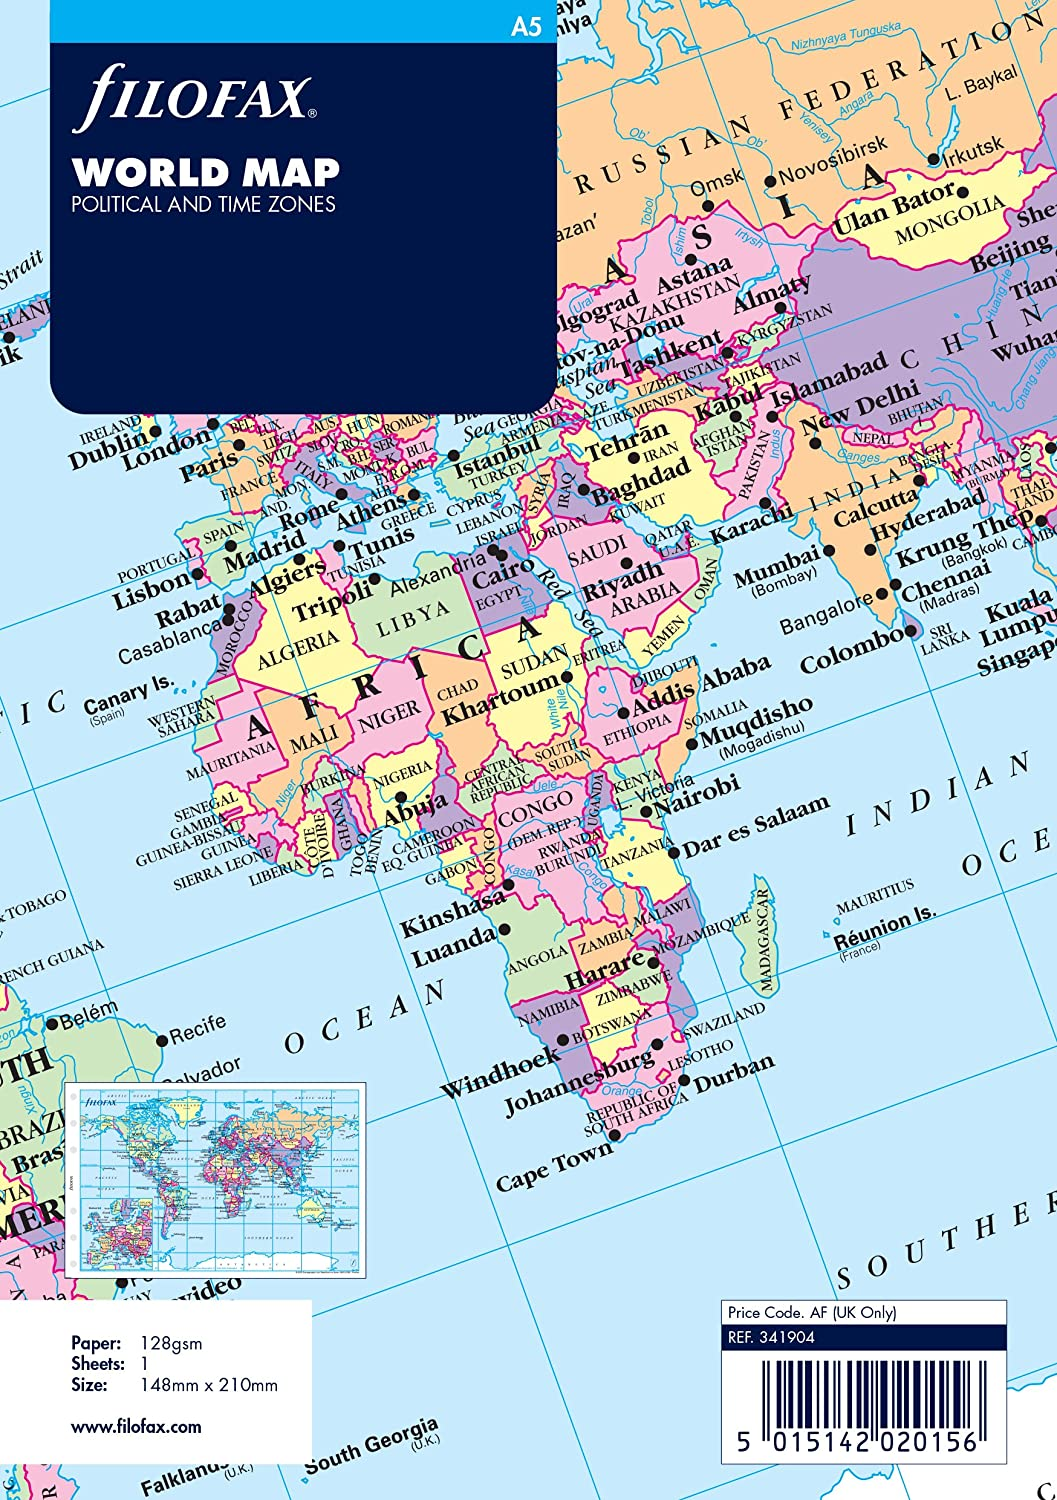 Filofax A5 World Map OfficeCentre 341904